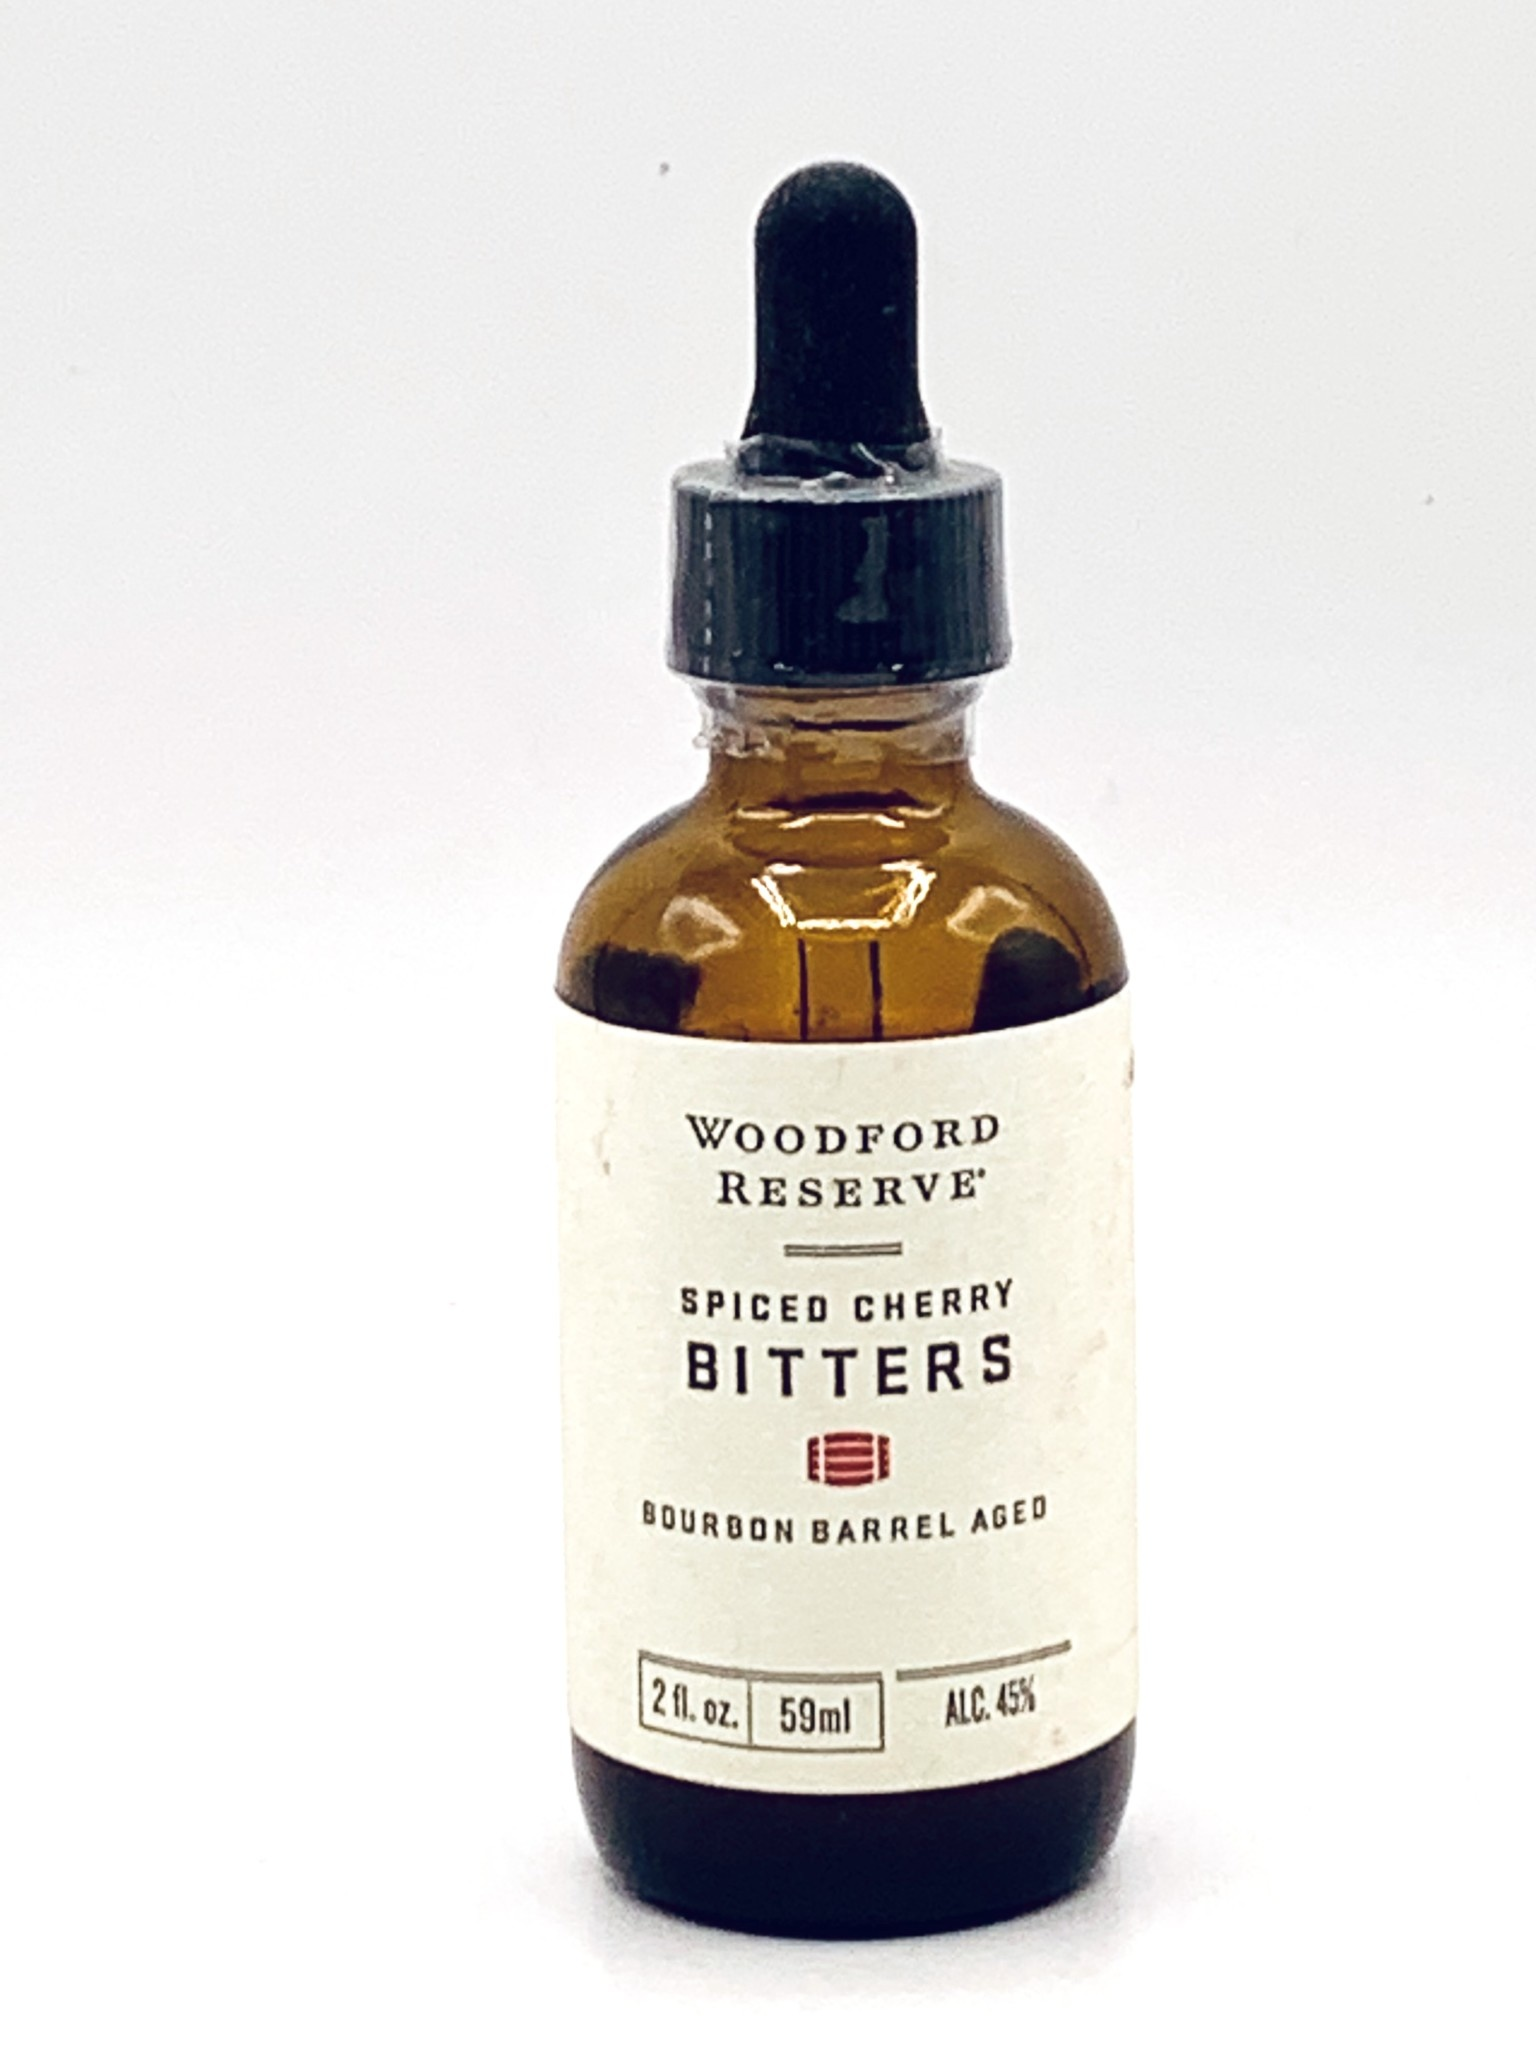 Woodford Reserve Spiced Cherry Bitters 2oz. (45% ABV)